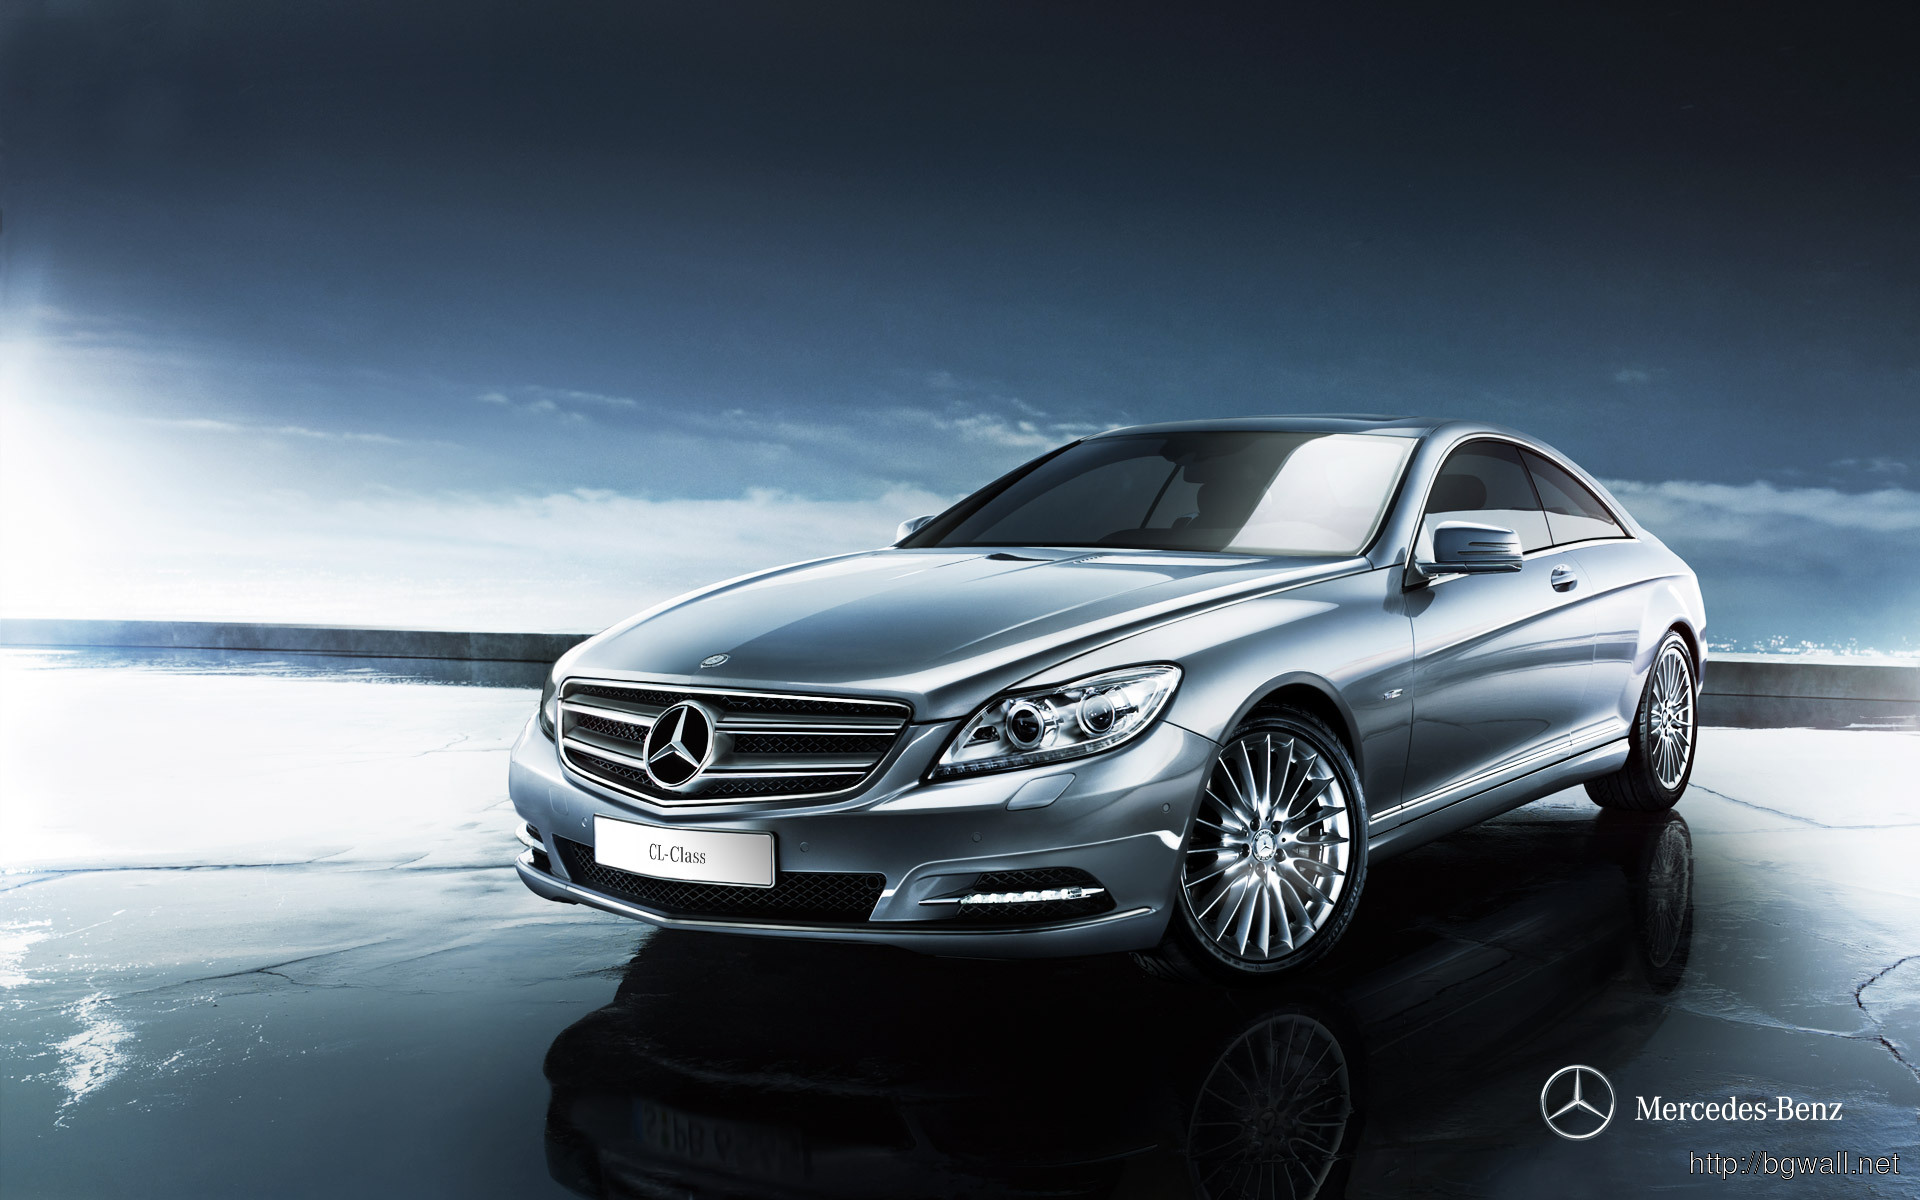 2013 mercedes benz cl 600 background wallpaper hd. Black Bedroom Furniture Sets. Home Design Ideas